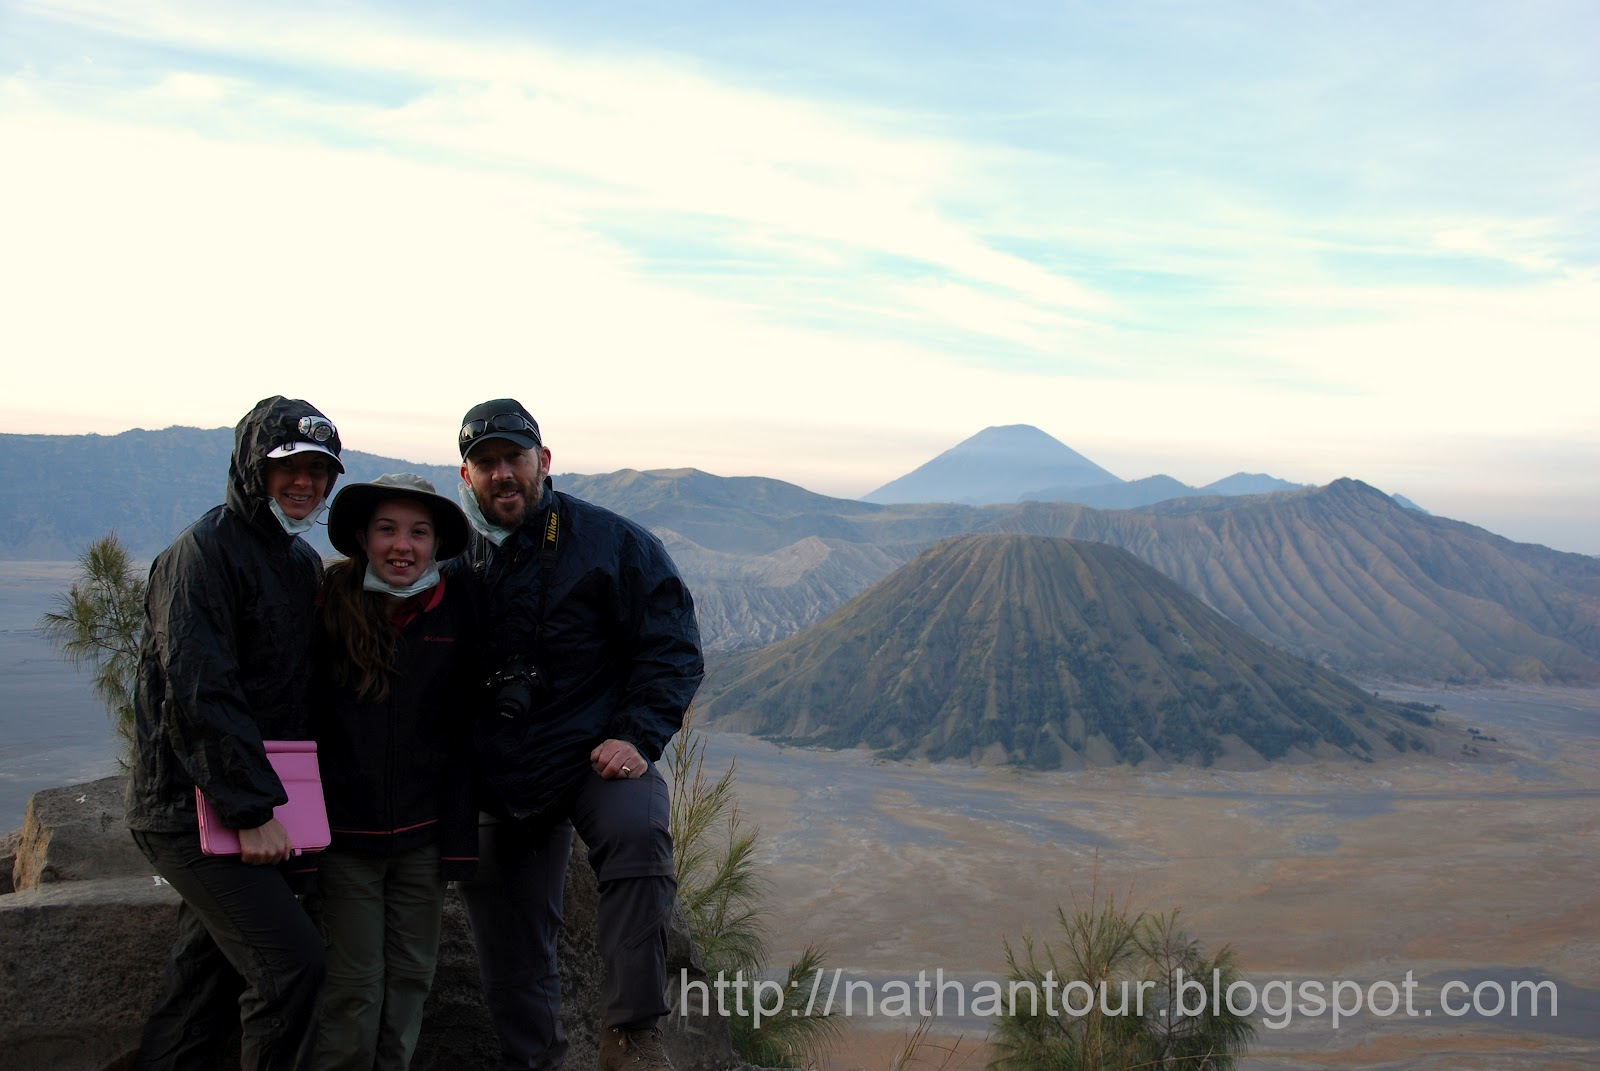 Nathan Tour And Travel Local Operator Provide Adventure Midnight Bromo Full Destination Special Eco Trip In East Java Start From Surabaya To Ijen Crater For Trekking Tours Mount The Best Sunrise With 4wd Then